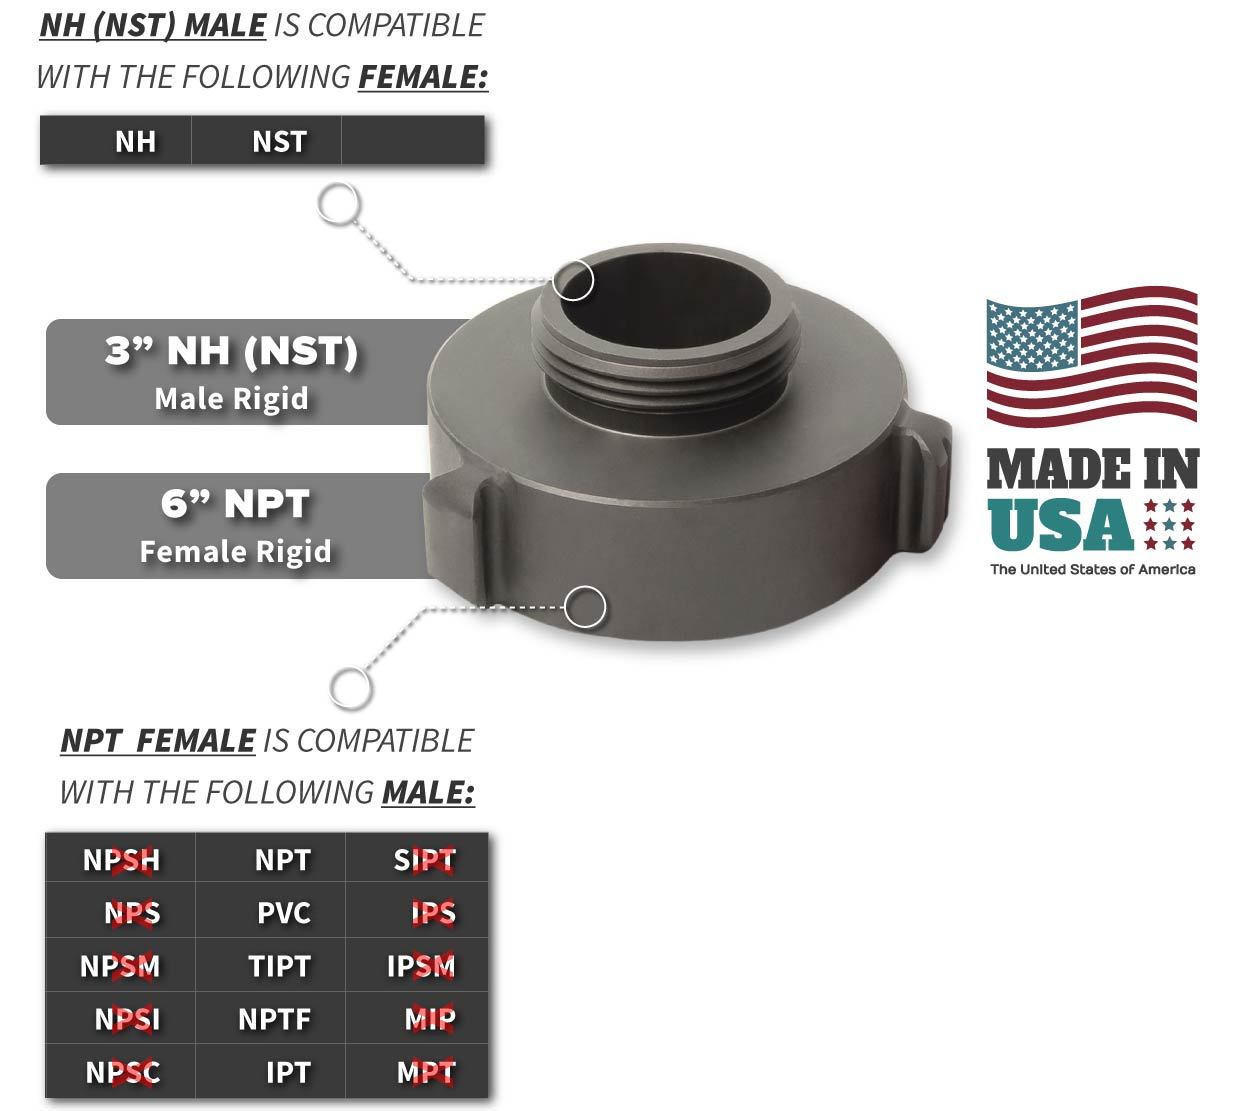 6 Inch NPT Female x 3 Inch NH-NST Male Compatibility Thread Chart